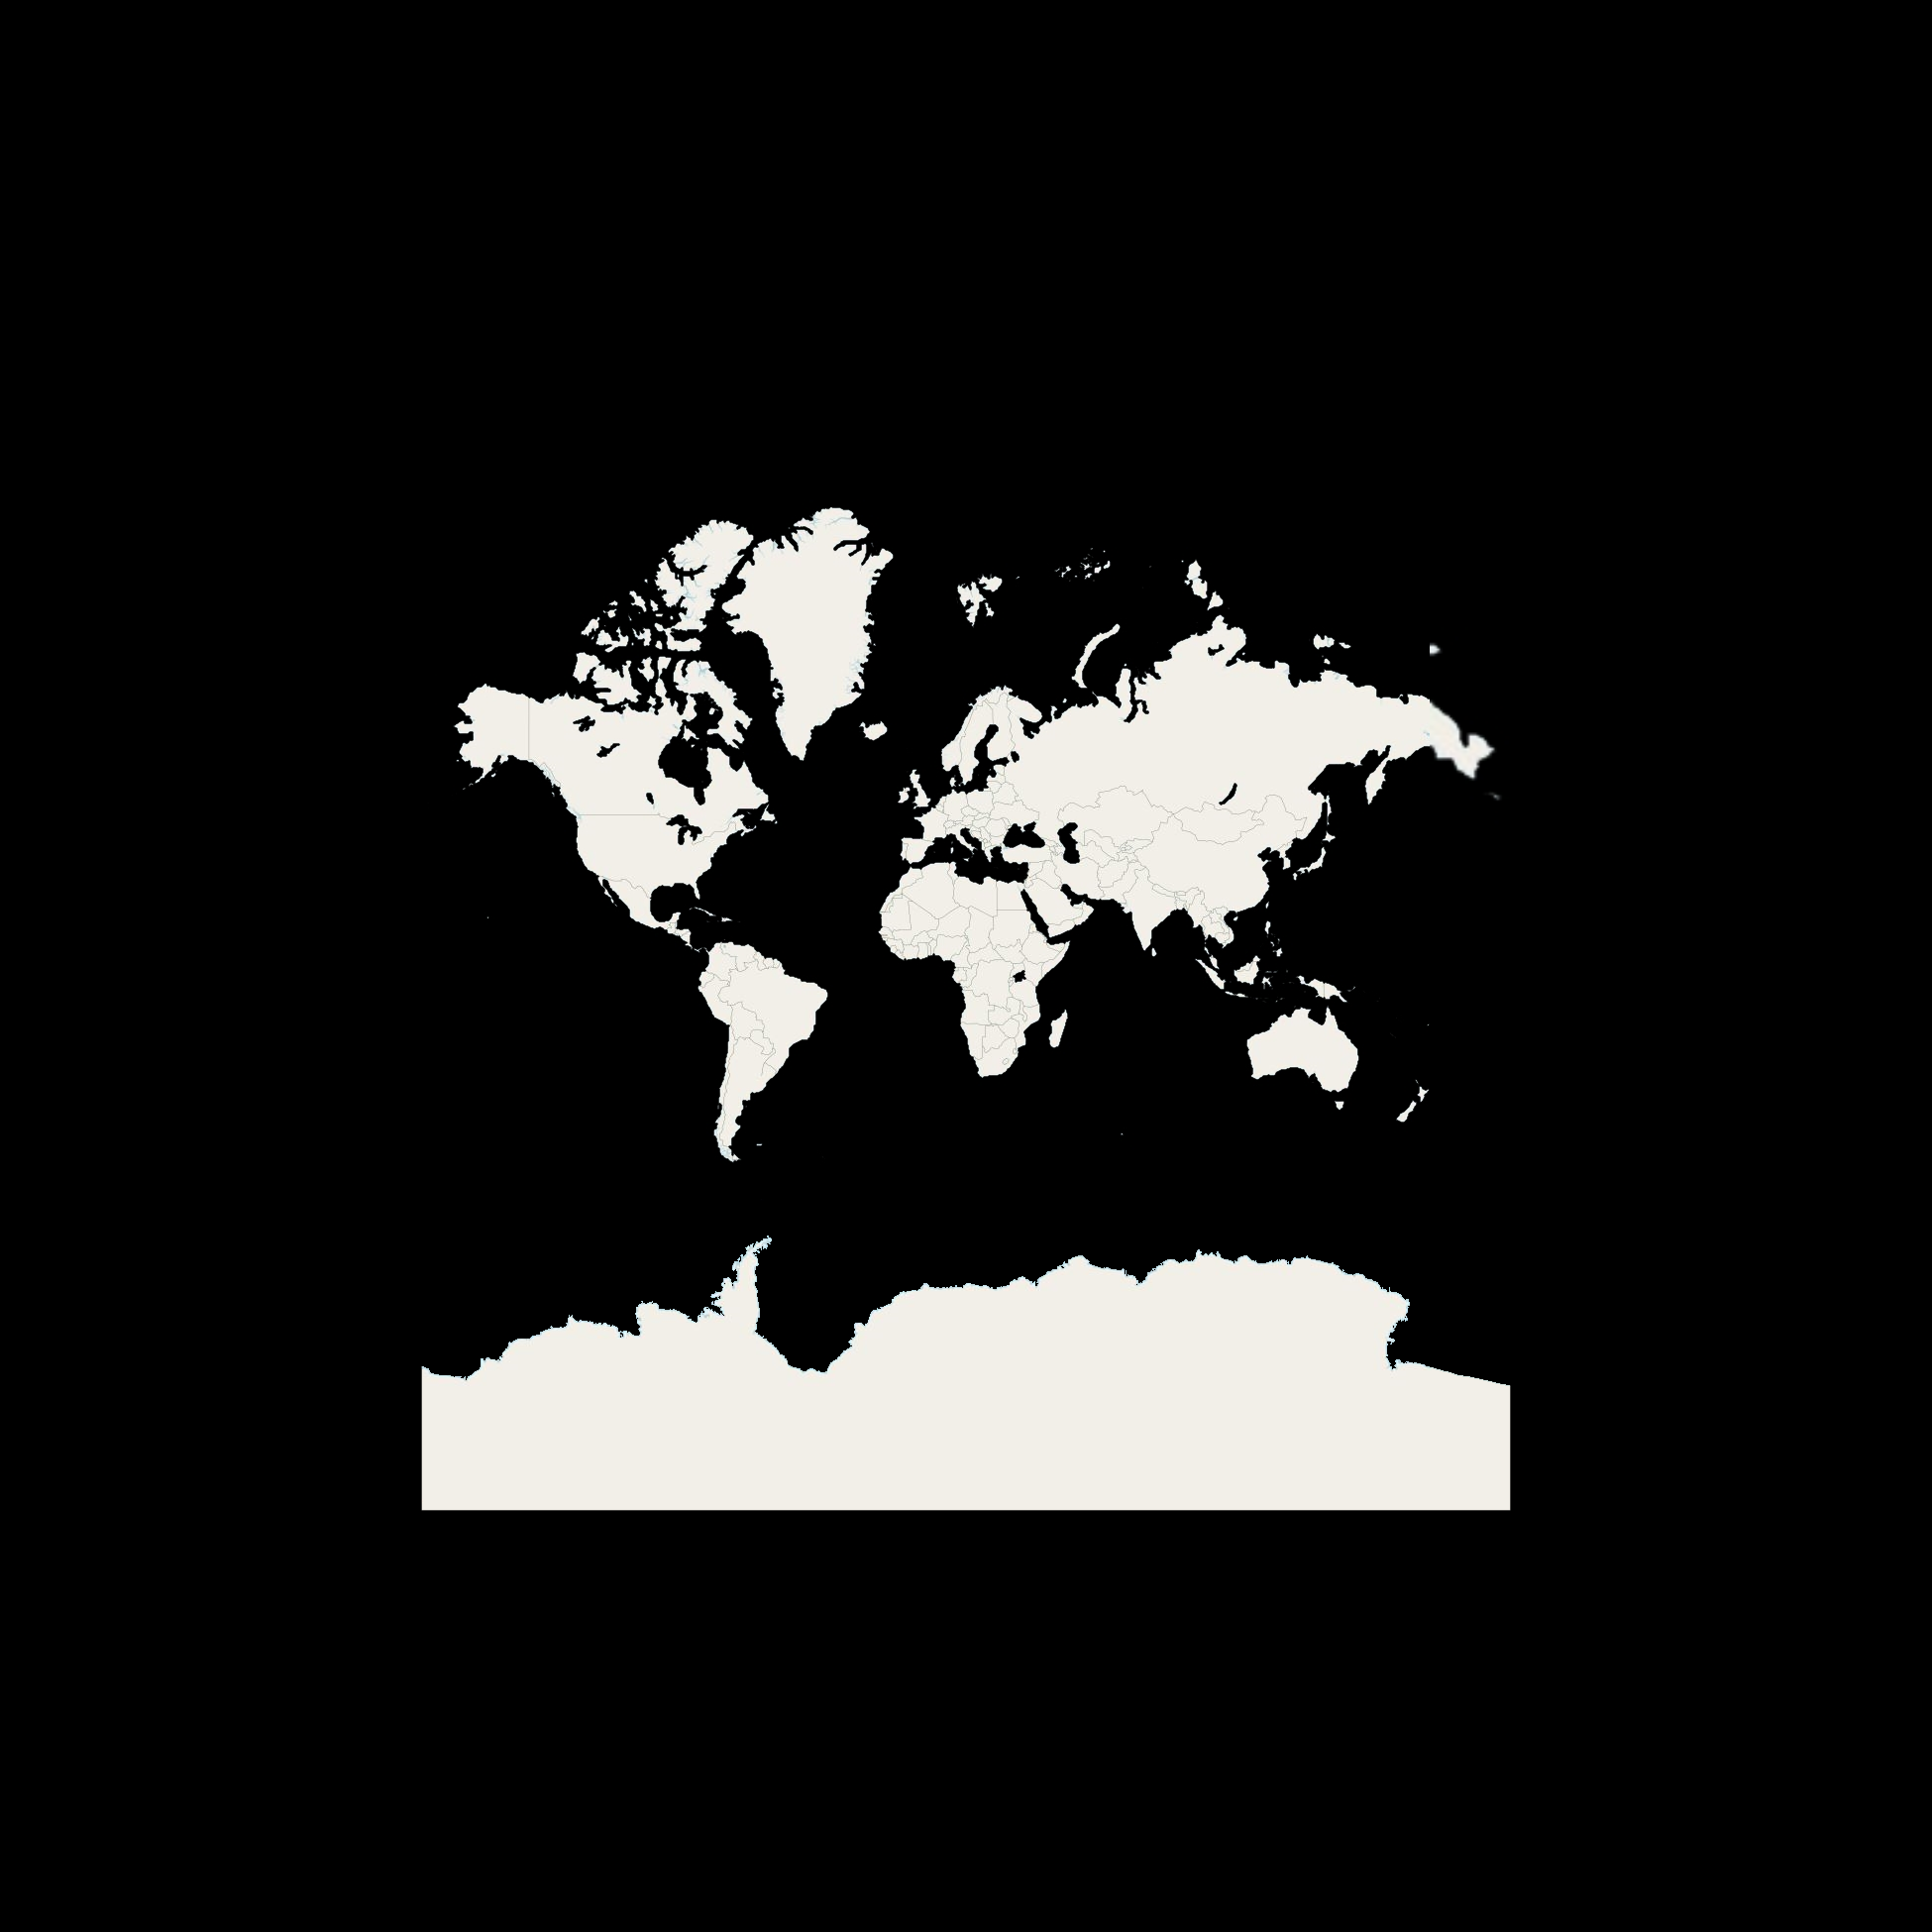 Customized World map in black and white